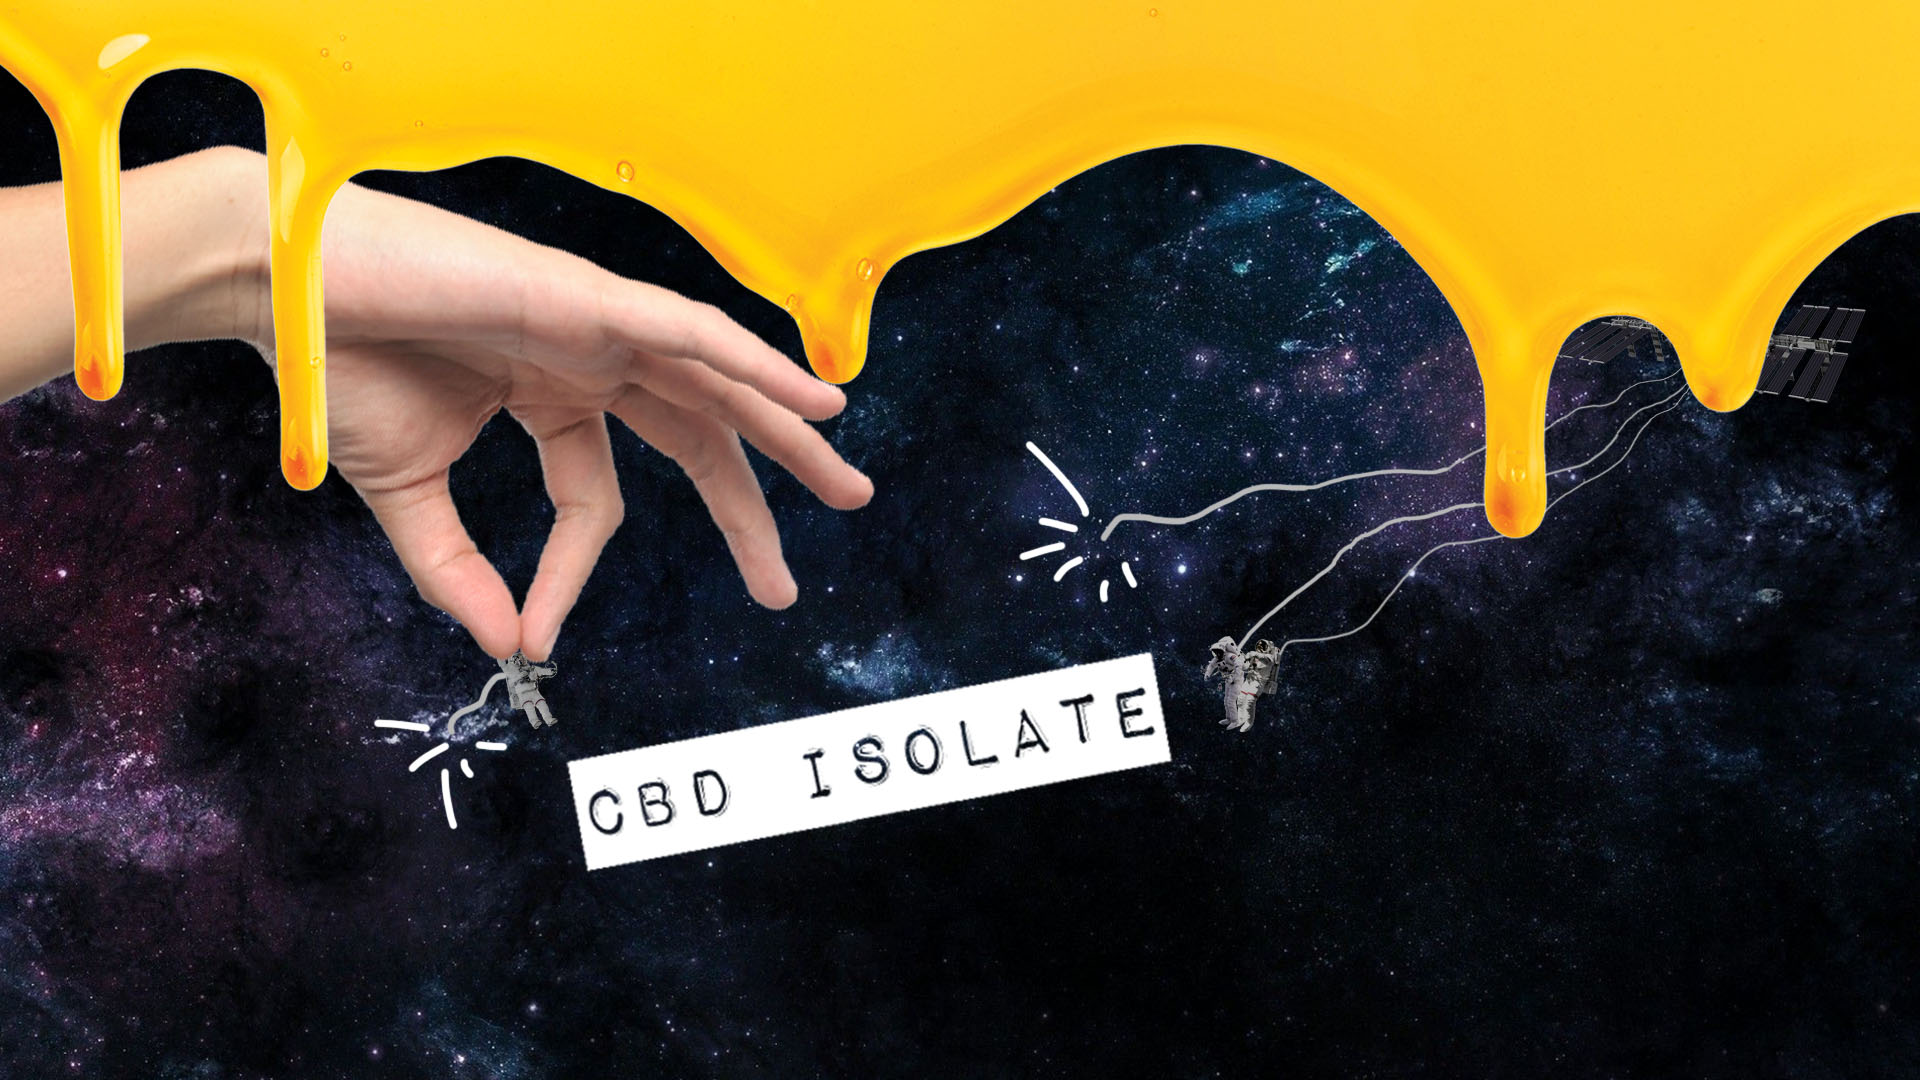 What's a CBD Isolate?